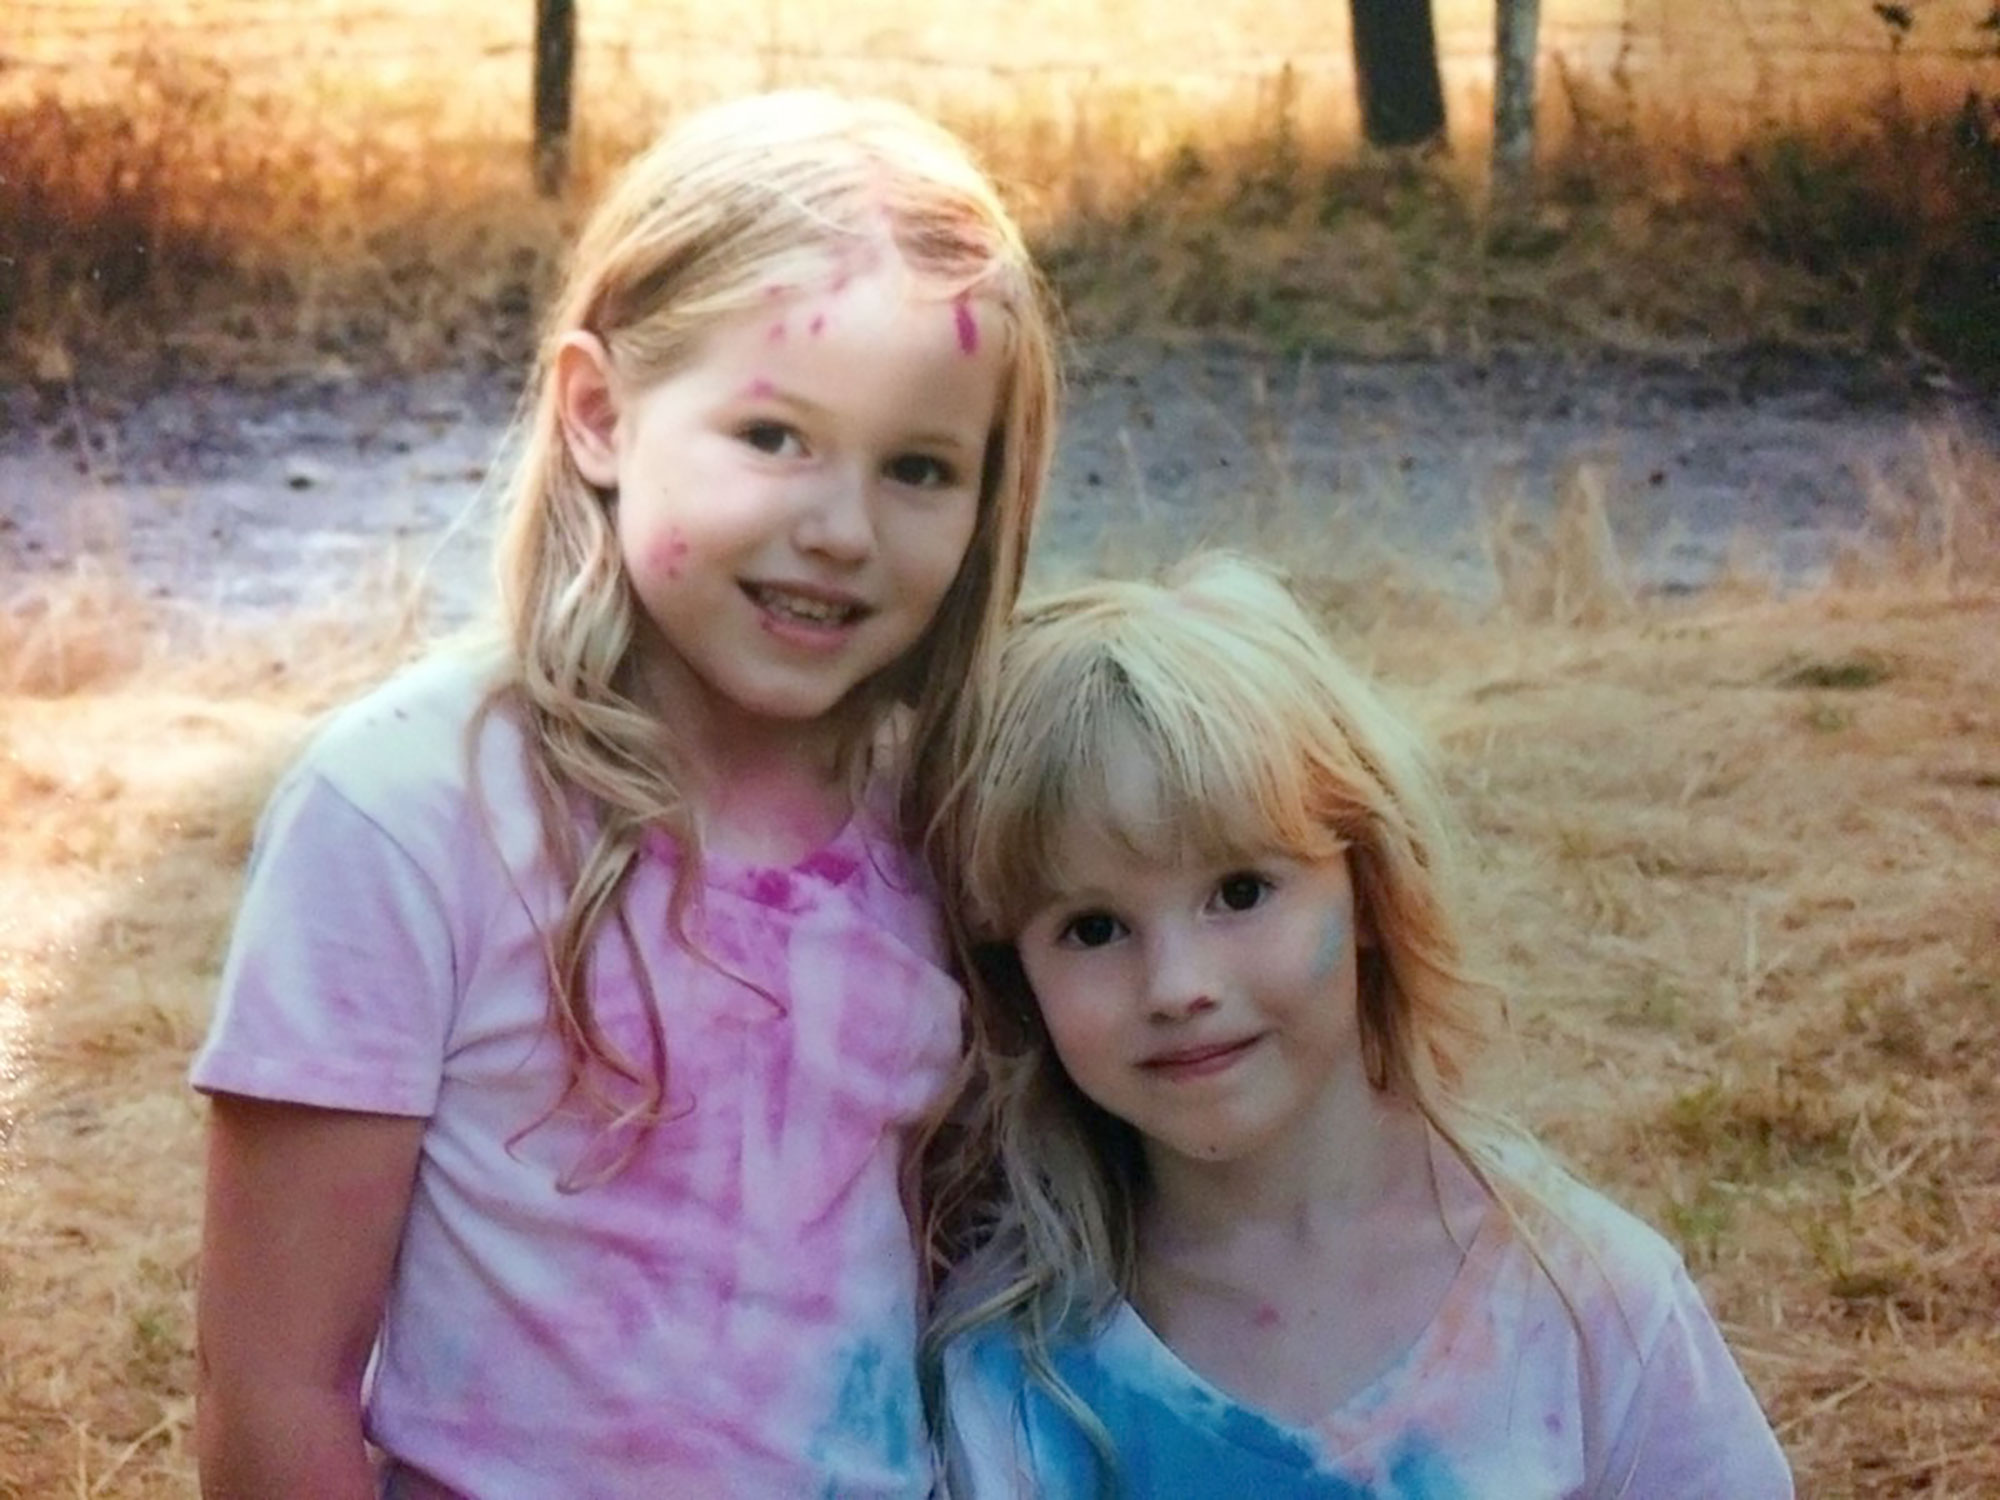 Sisters, 5 and 8, Found Safe in California After Missing for 44 Hours: It's 'A Miracle'